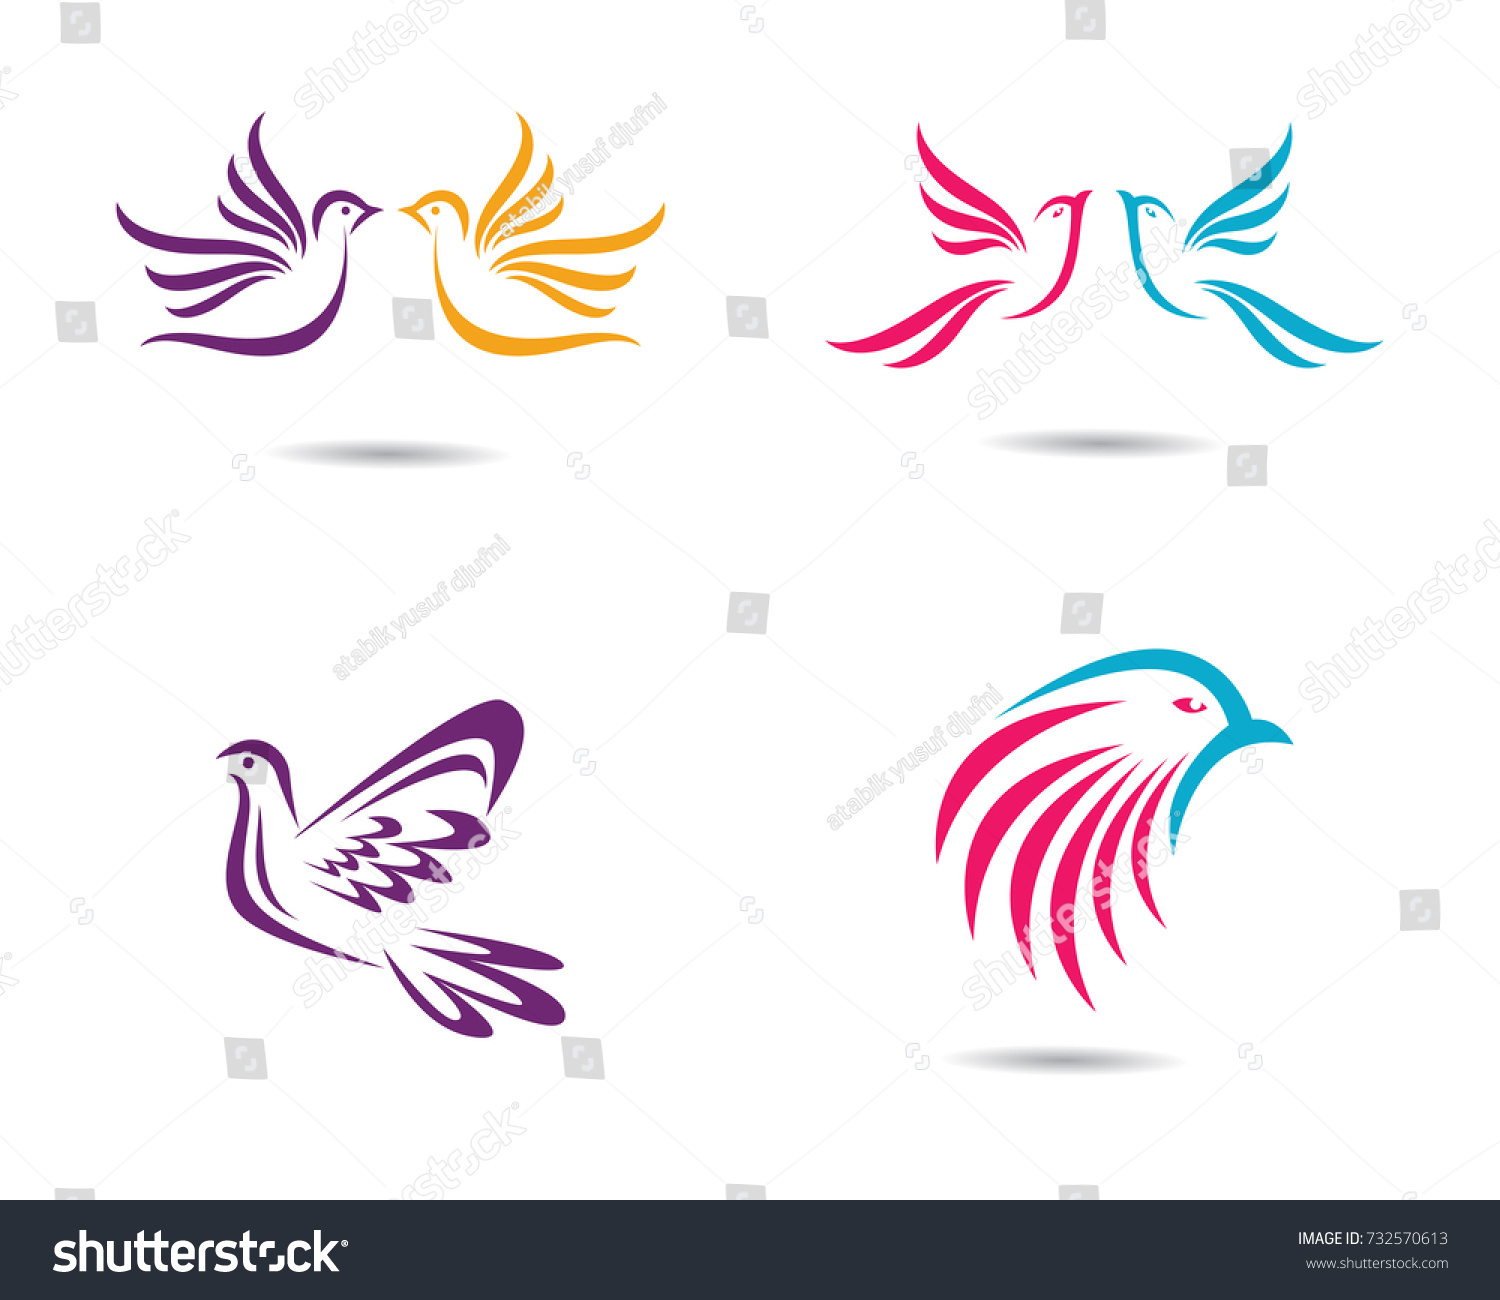 Dove Logo Template Stock Vector (Royalty Free) 732570613 - Shutterstock